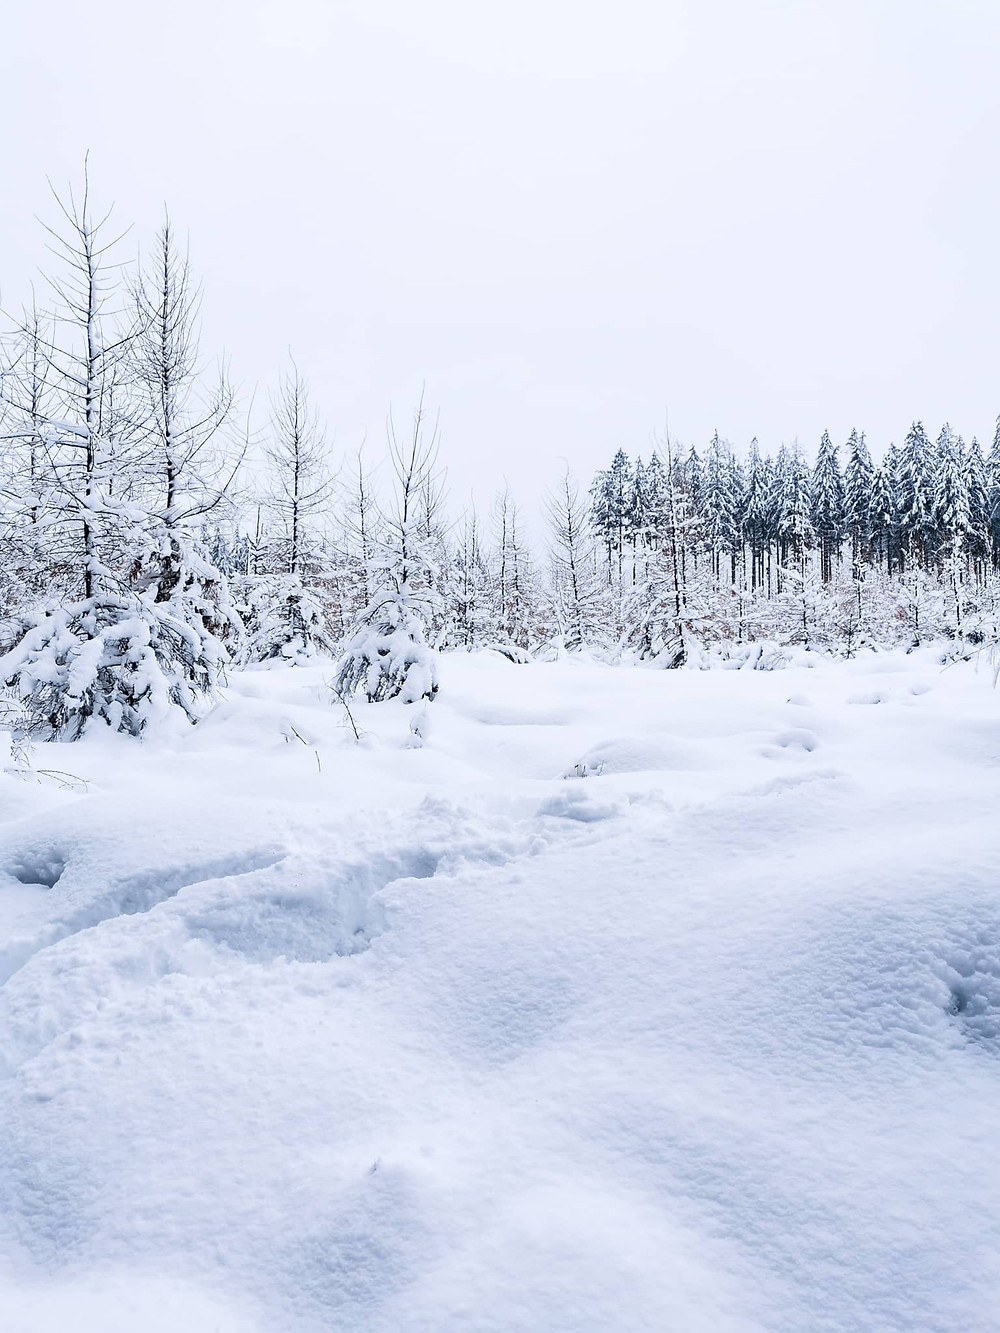 Snowy forest in the Belgian Ardennes